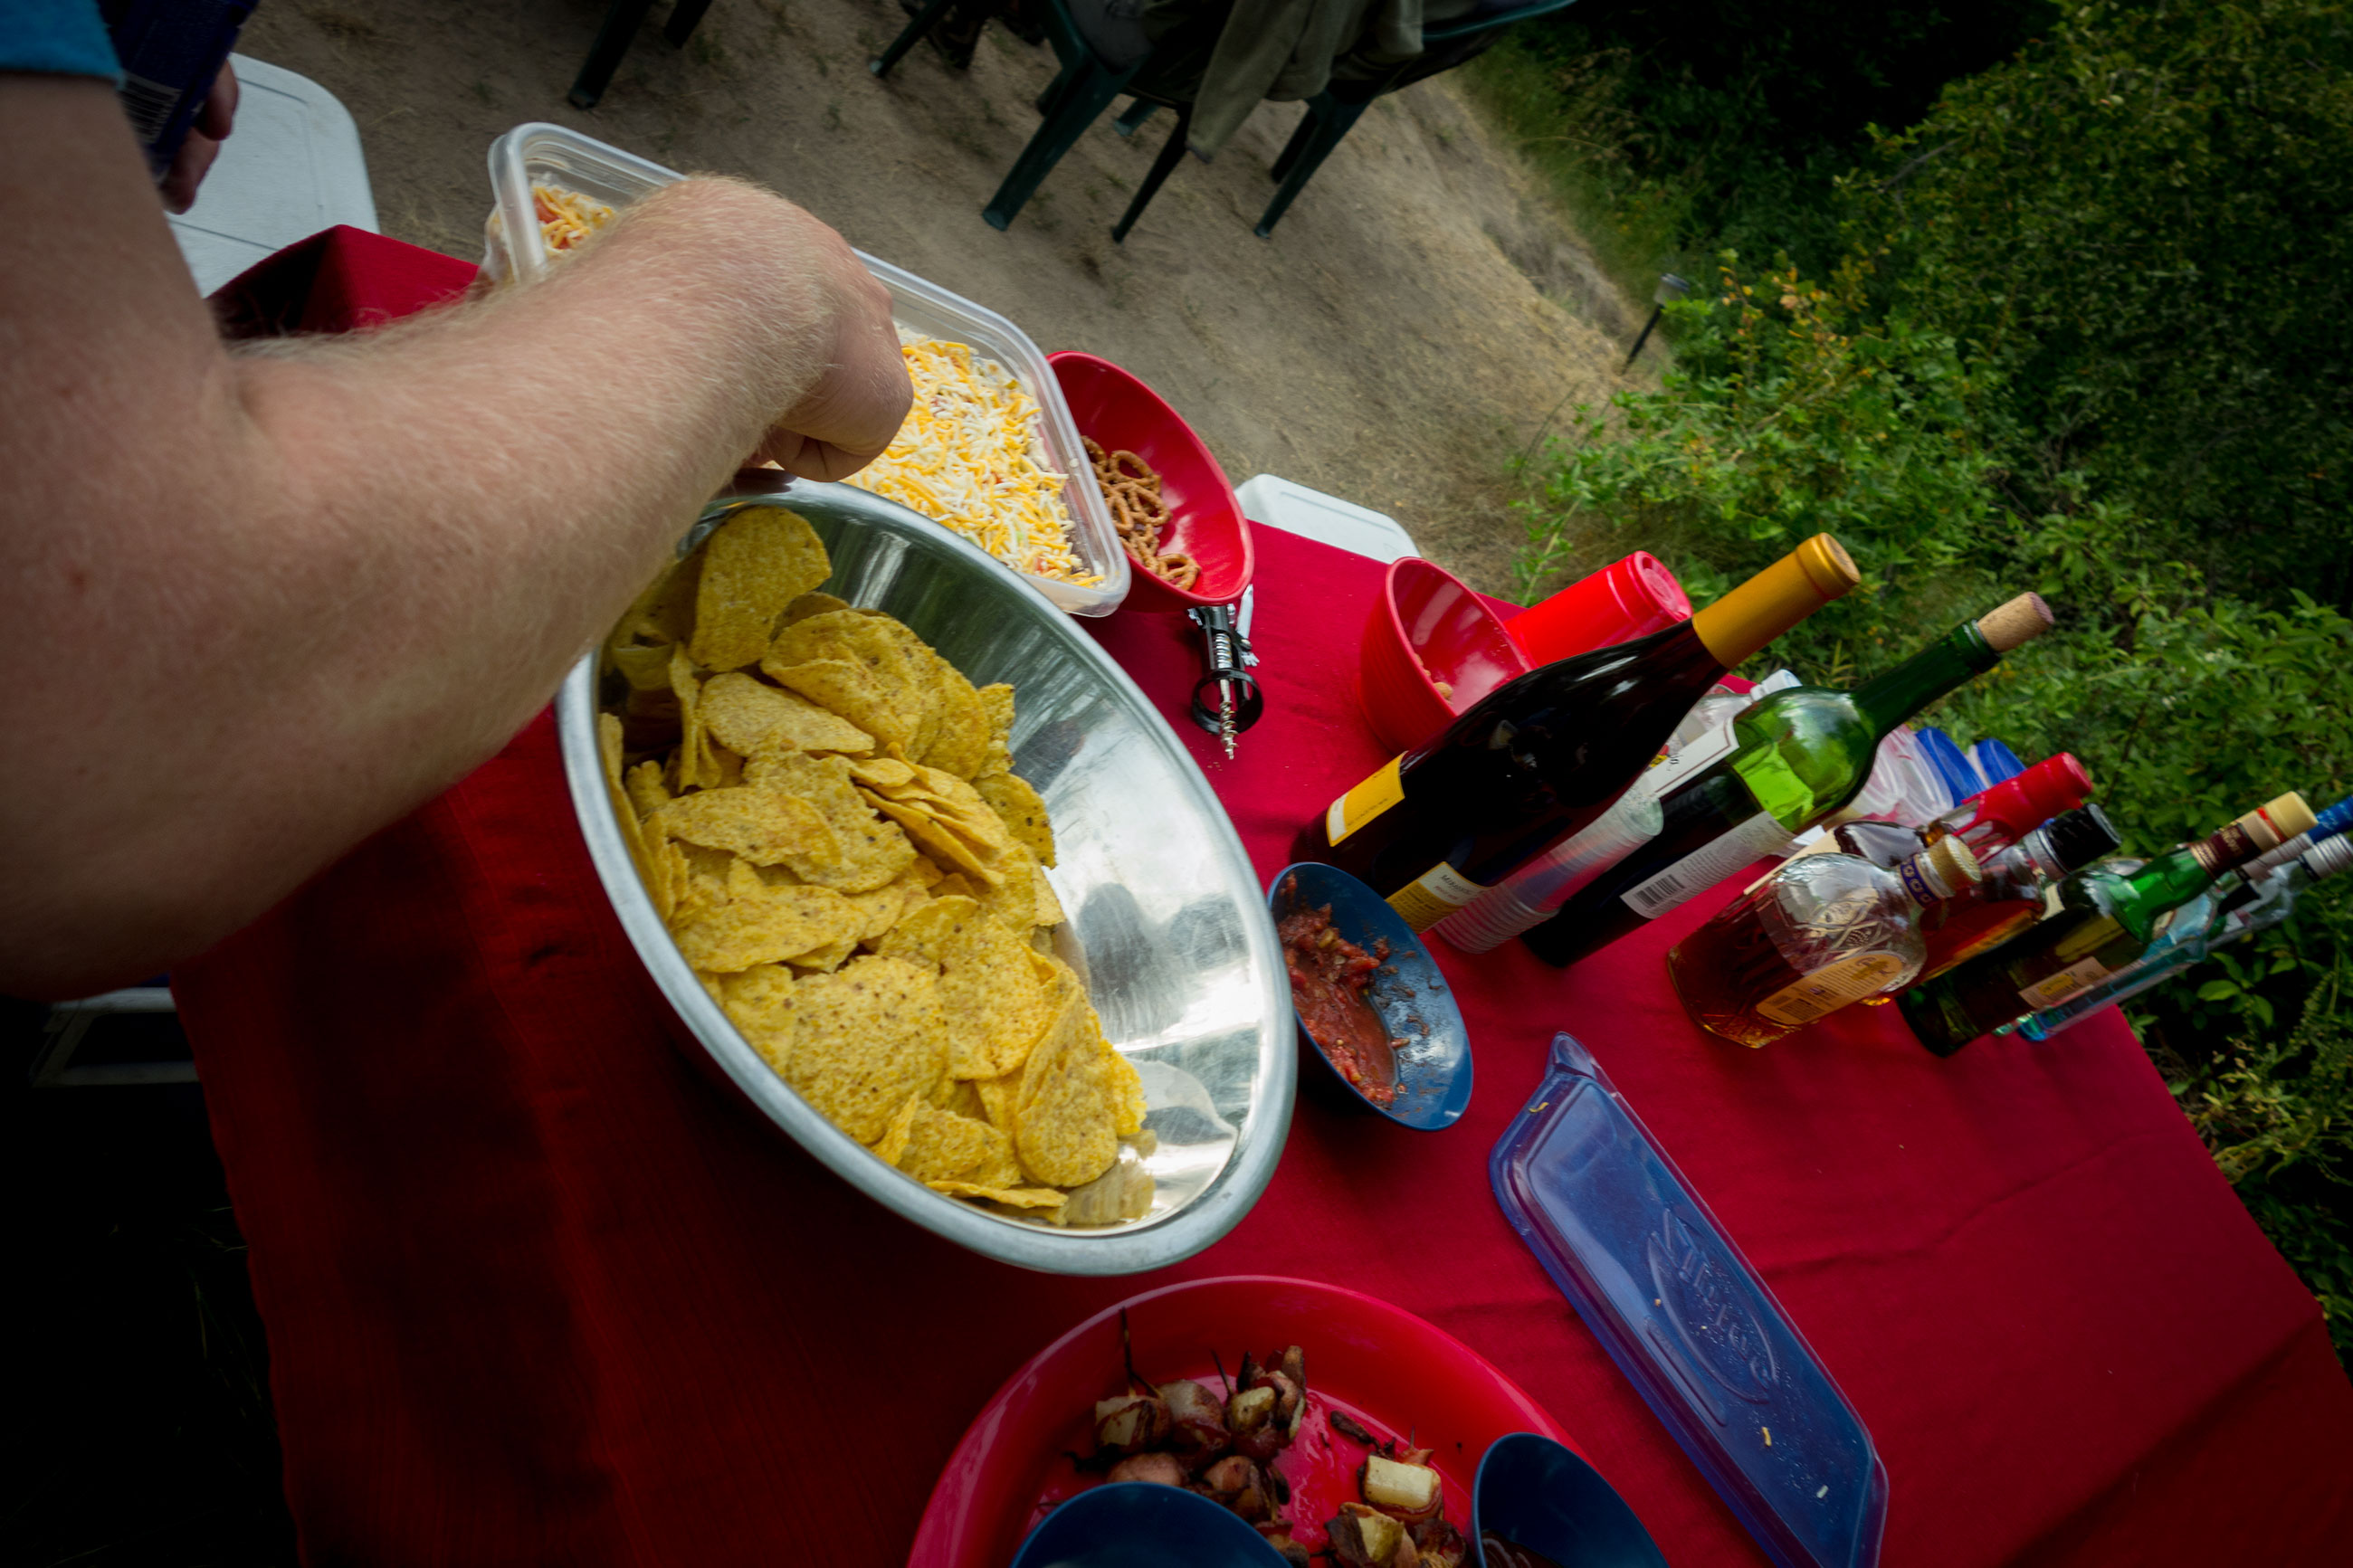 Dips and drinks to start the evening.